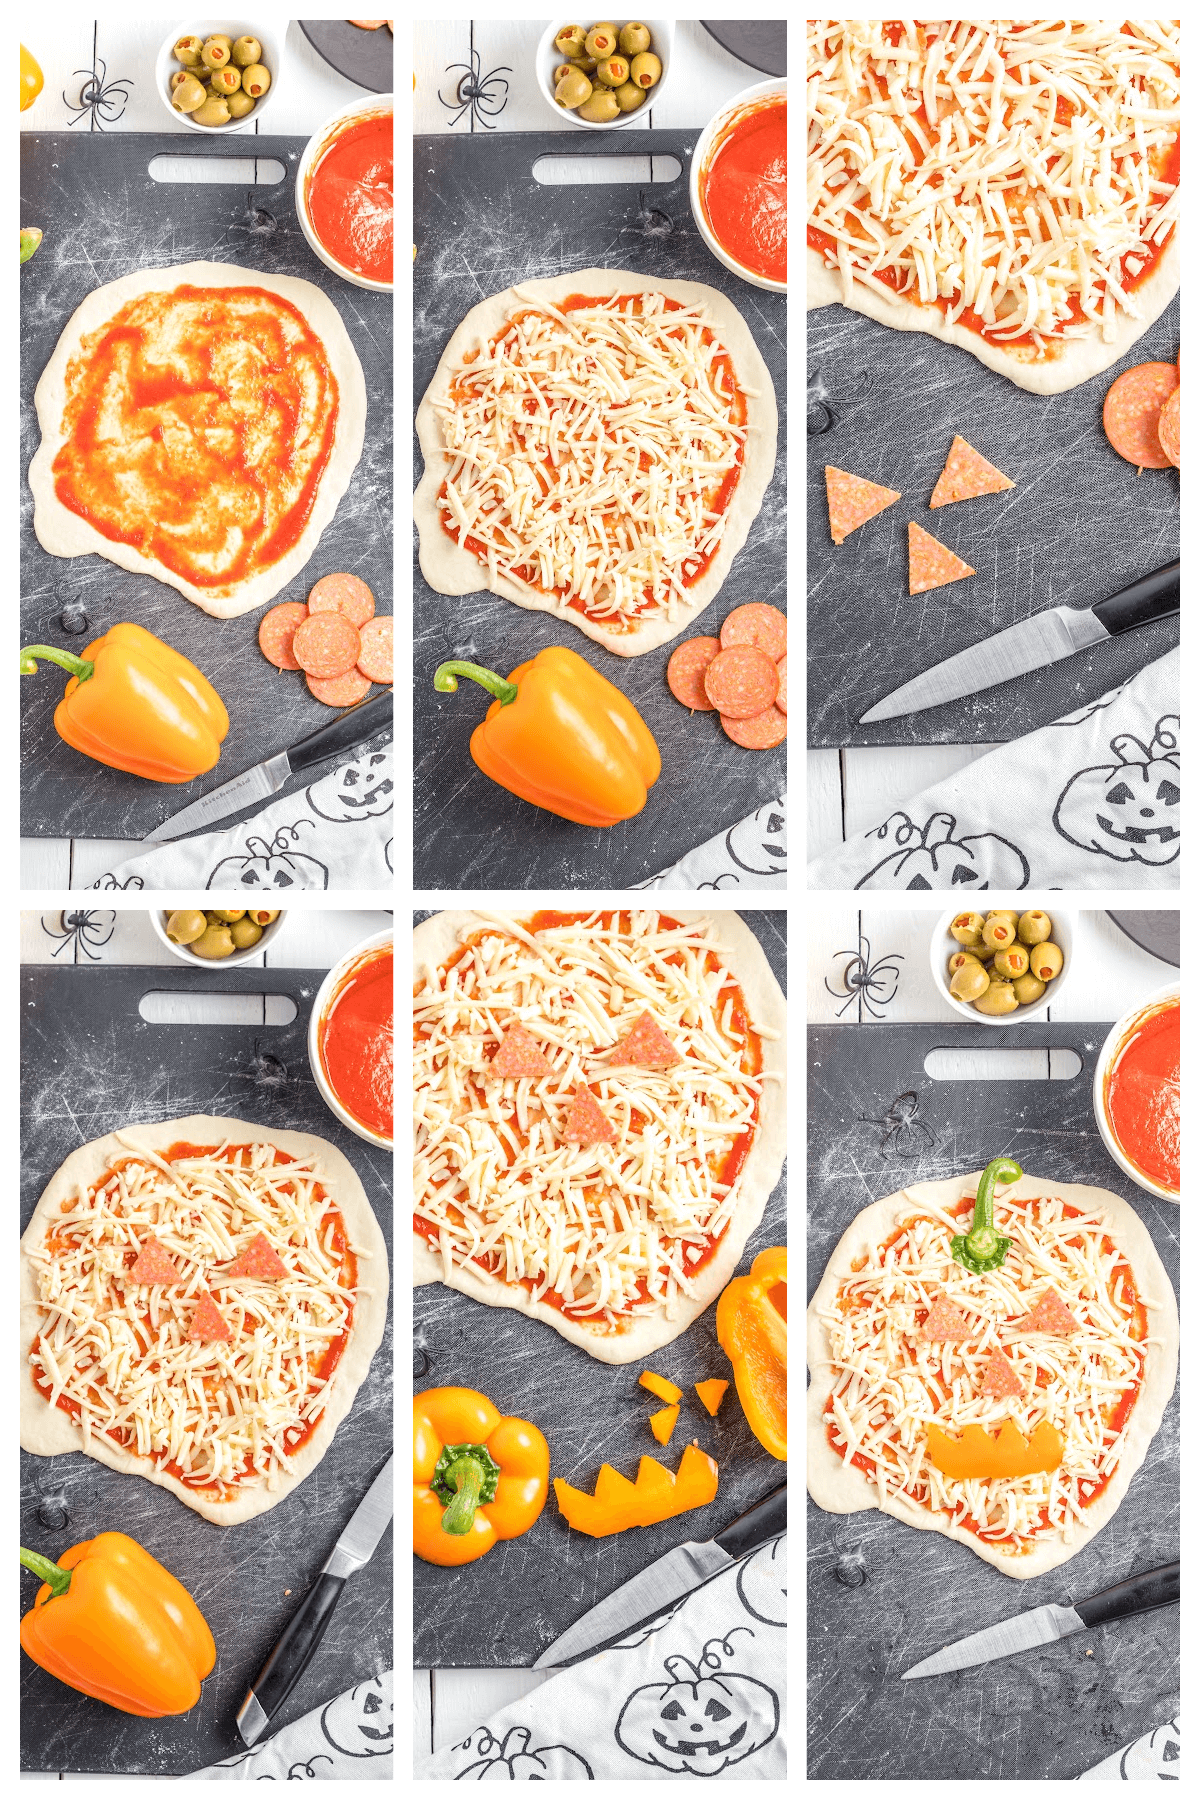 Step by Step instructions on how to make the Jack-O-Lantern Pizza.